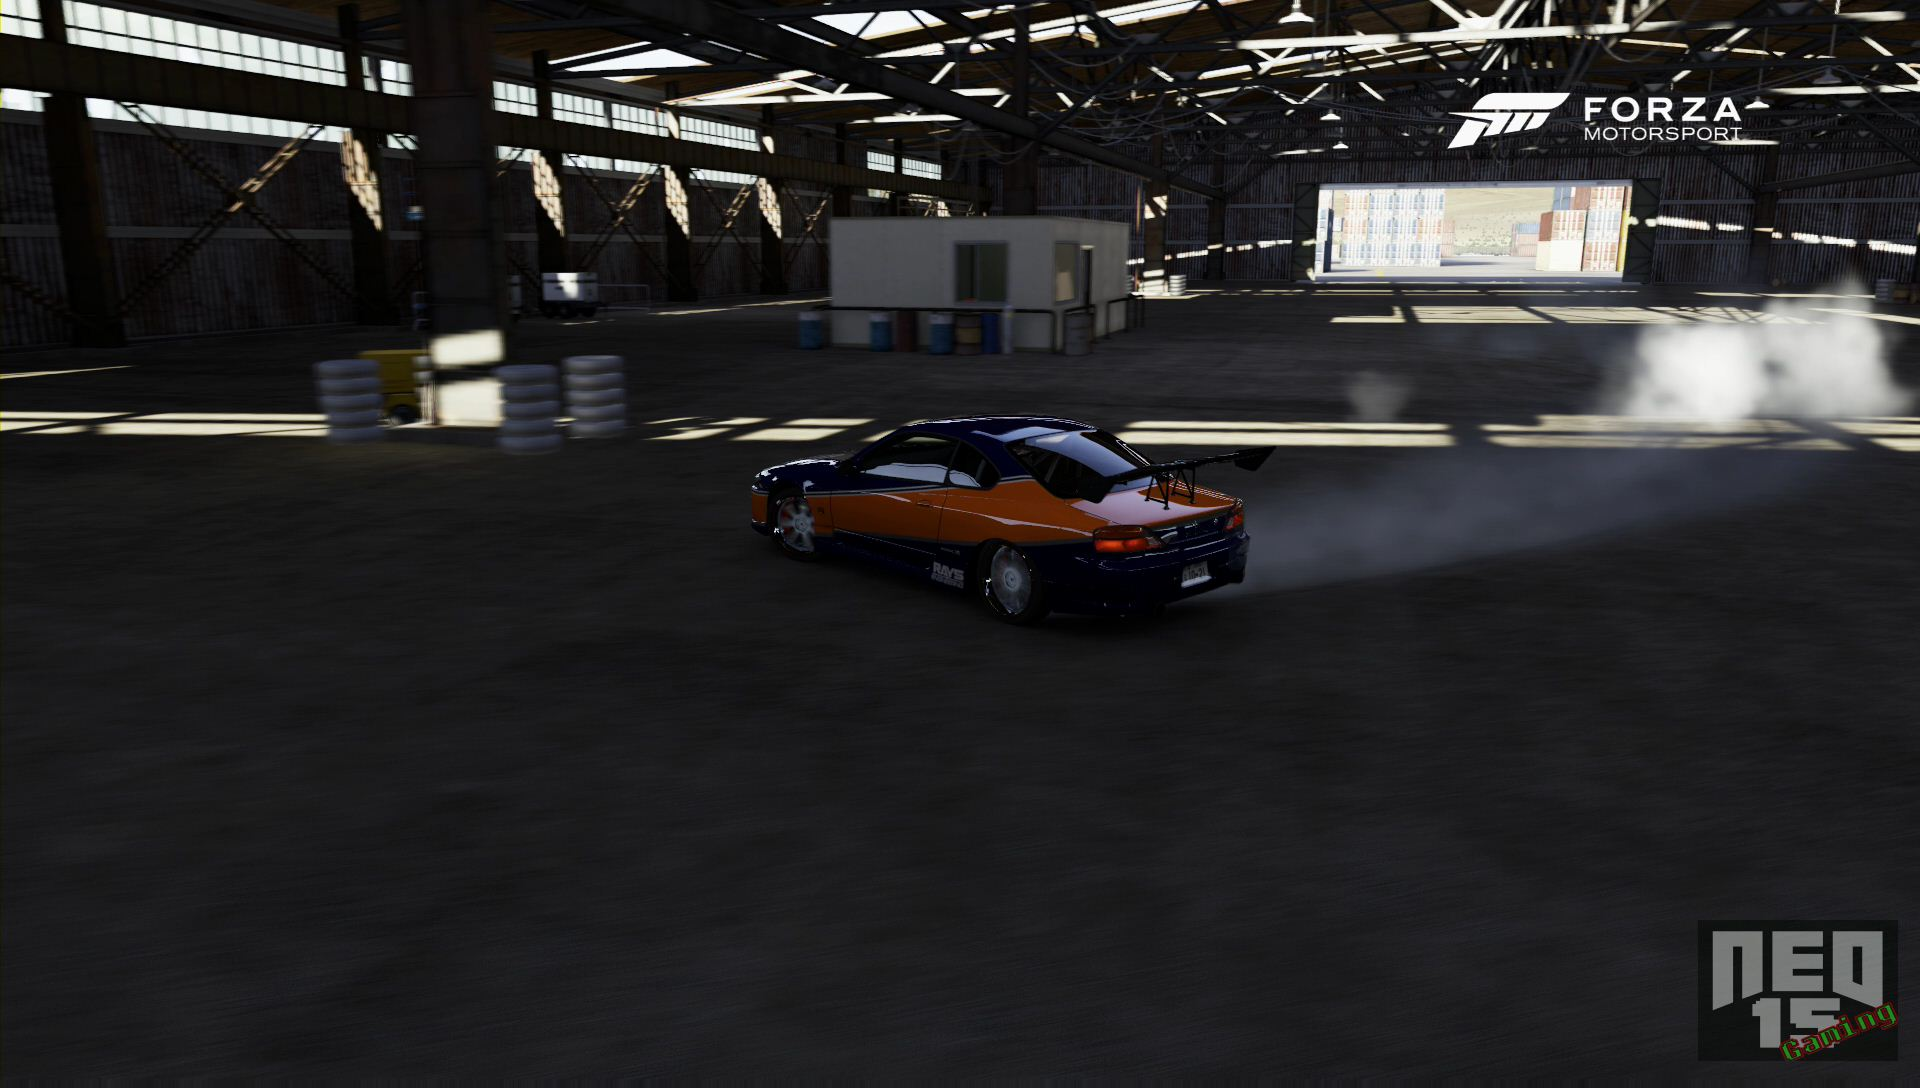 My Replica Of The Mona Lisa Nissan Silvia S15 From Tokyo Drift 1 Comment